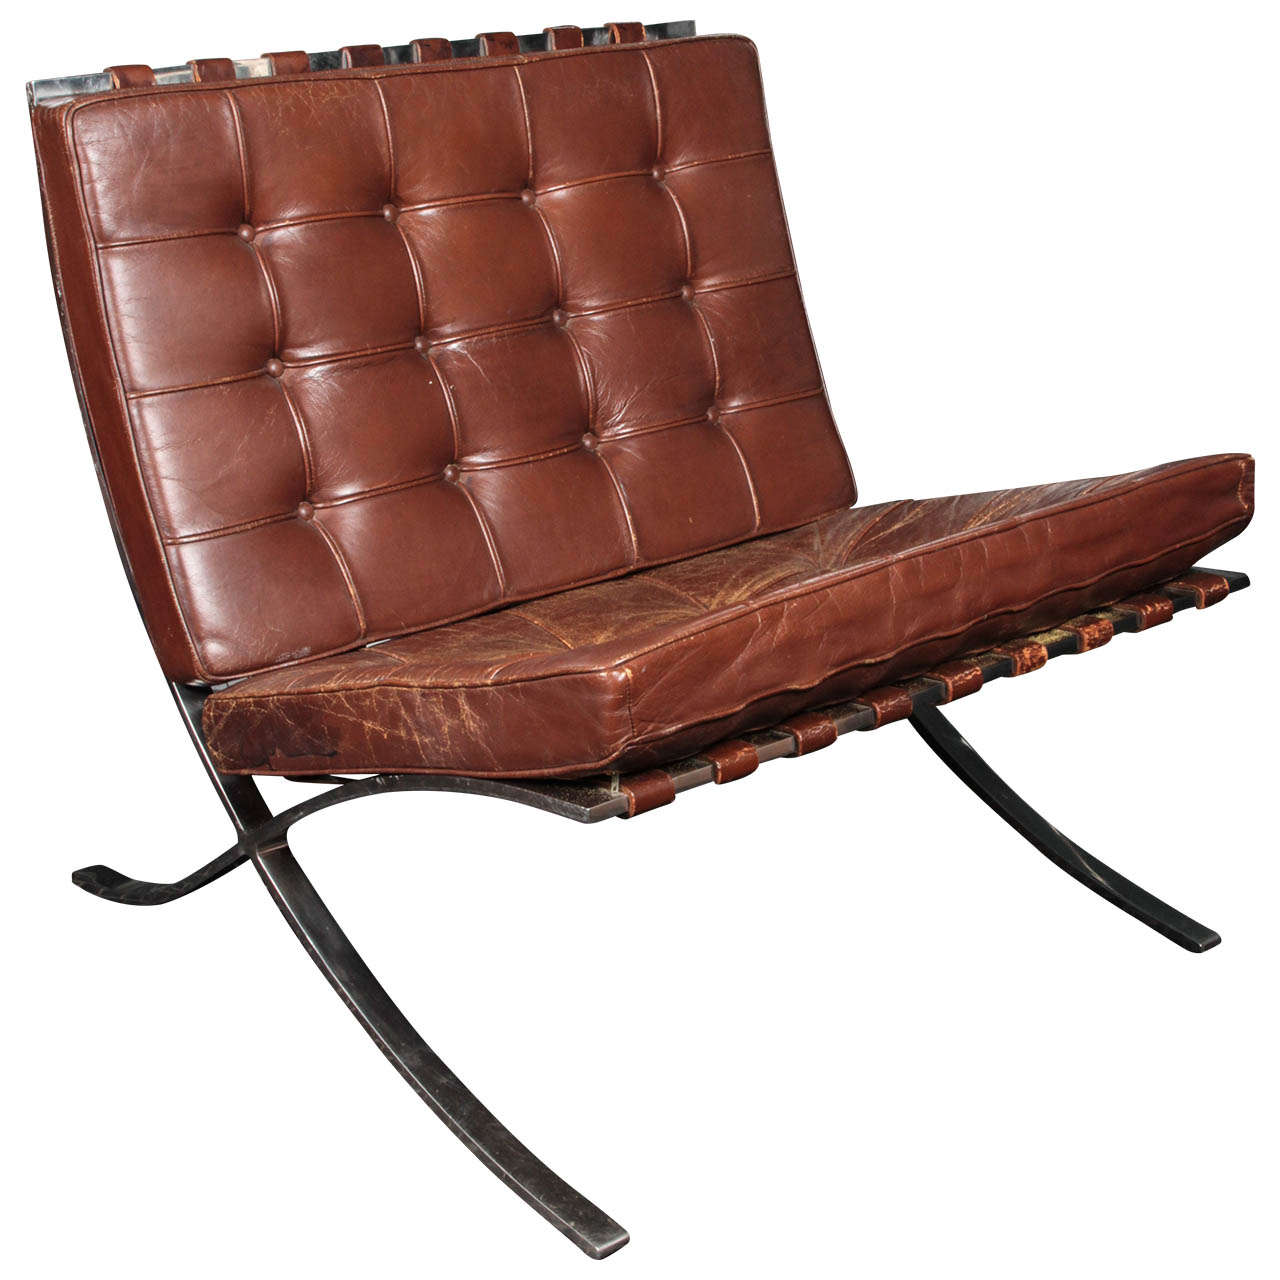 brown leather barcelona chair by ludwig mies van der rohe. Black Bedroom Furniture Sets. Home Design Ideas